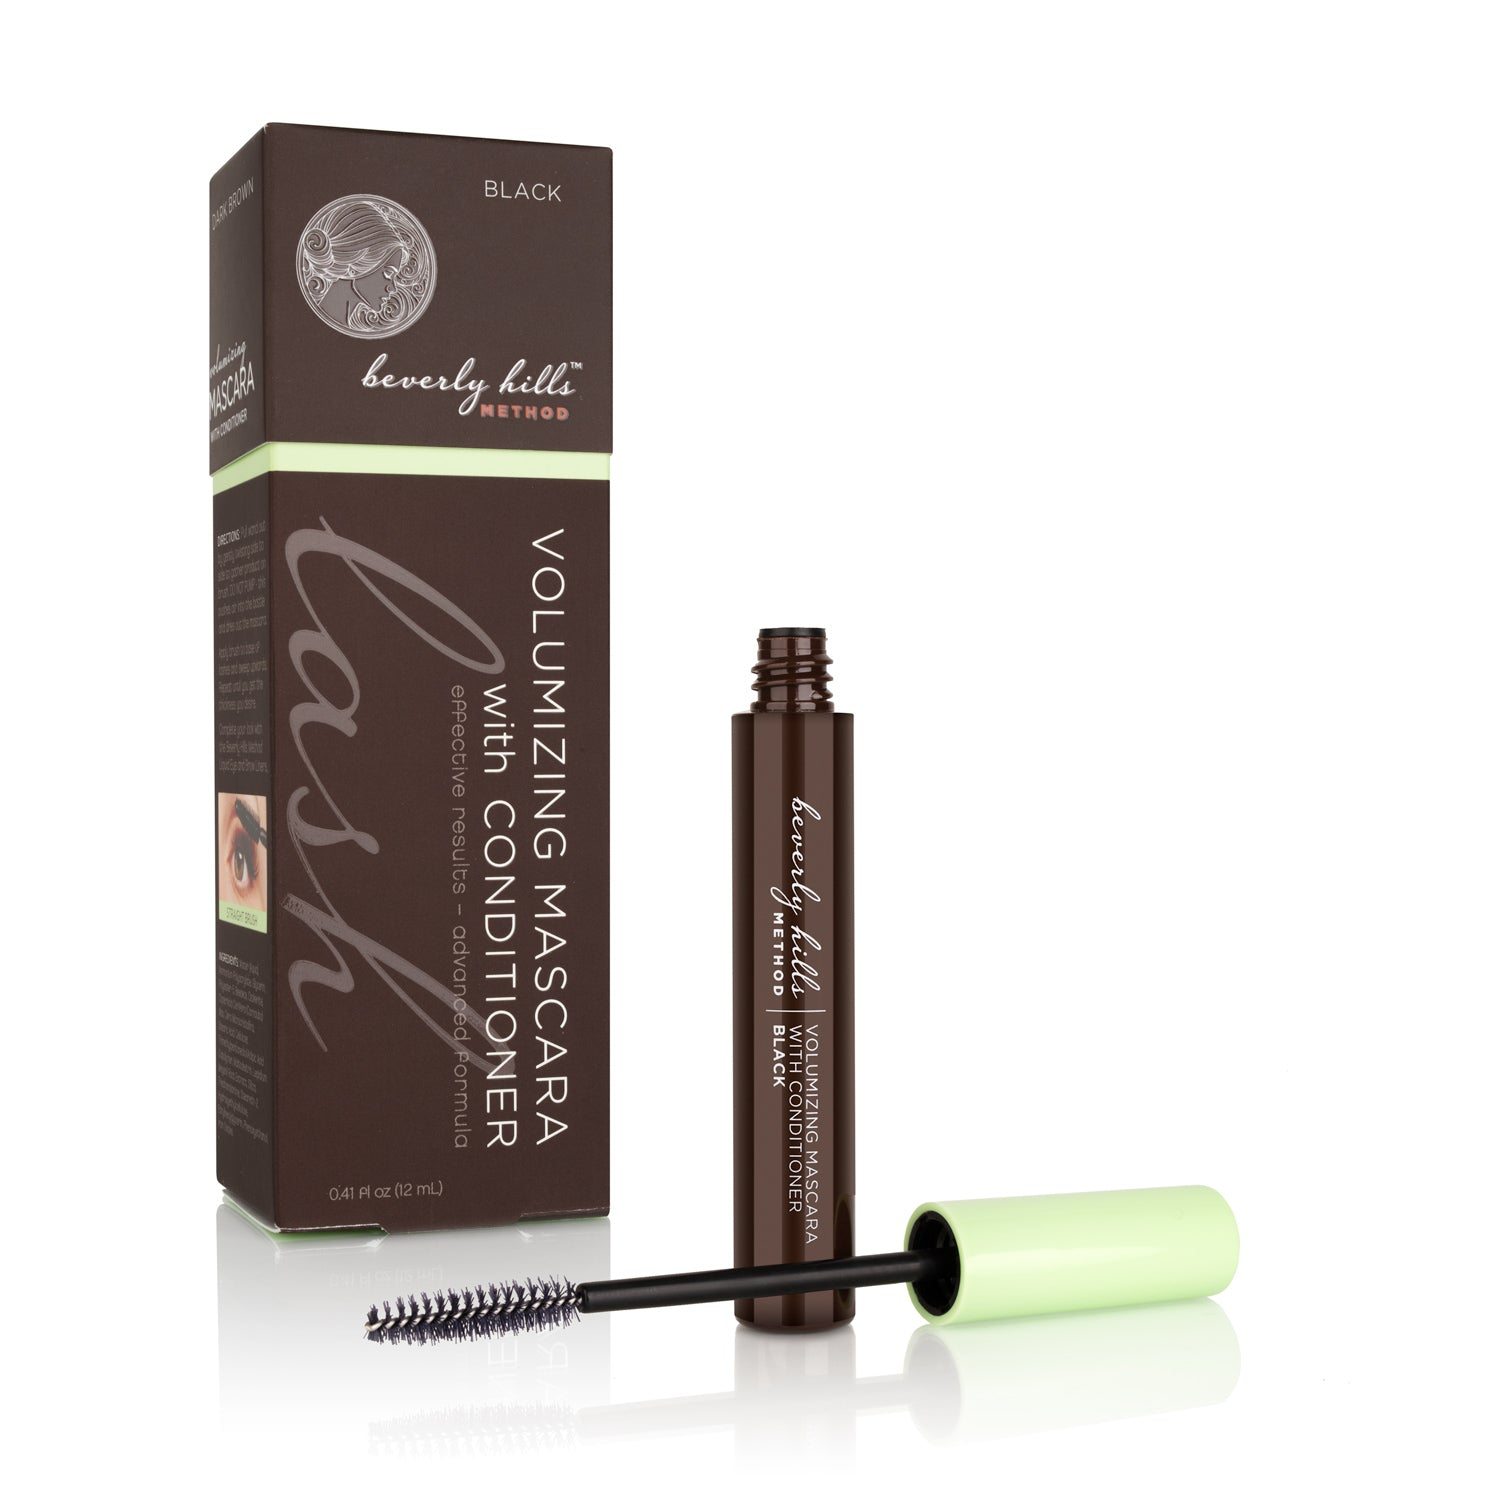 Mascara with Lash Growth Enhancer - Black